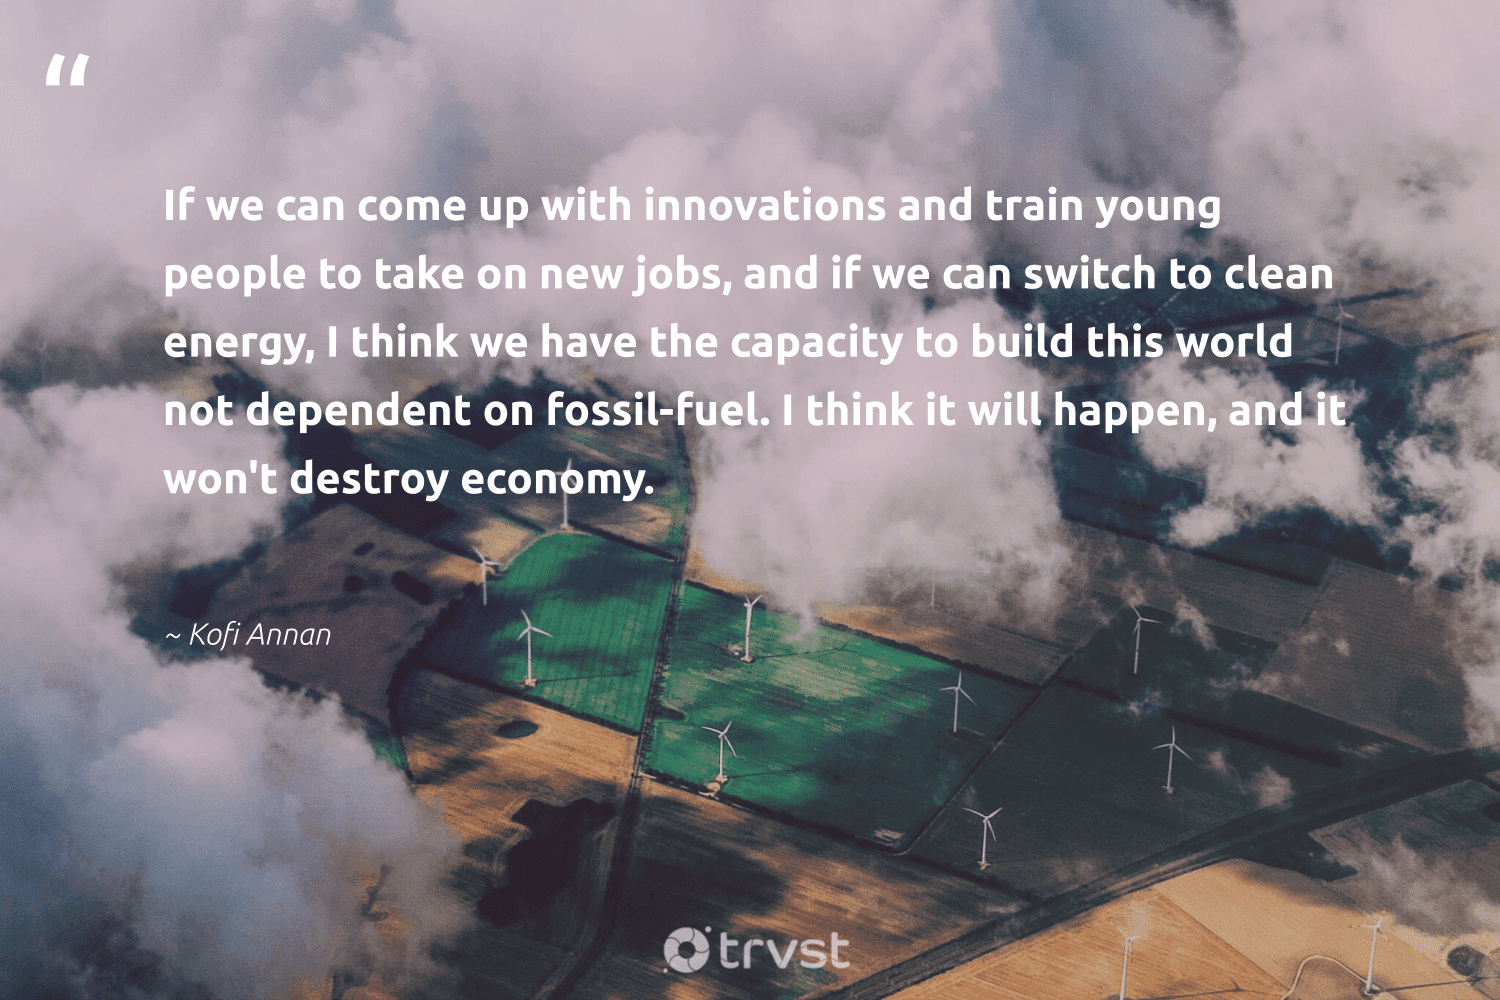 """""""If we can come up with innovations and train young people to take on new jobs, and if we can switch to clean energy, I think we have the capacity to build this world not dependent on fossil-fuel. I think it will happen, and it won't destroy economy.""""  - Kofi Annan #trvst #quotes #renewableenergy #energy #cleanenergy #fossil #environmentallyfriendly #nature #planetearthfirst #renewable #cop21 #environmentalist"""